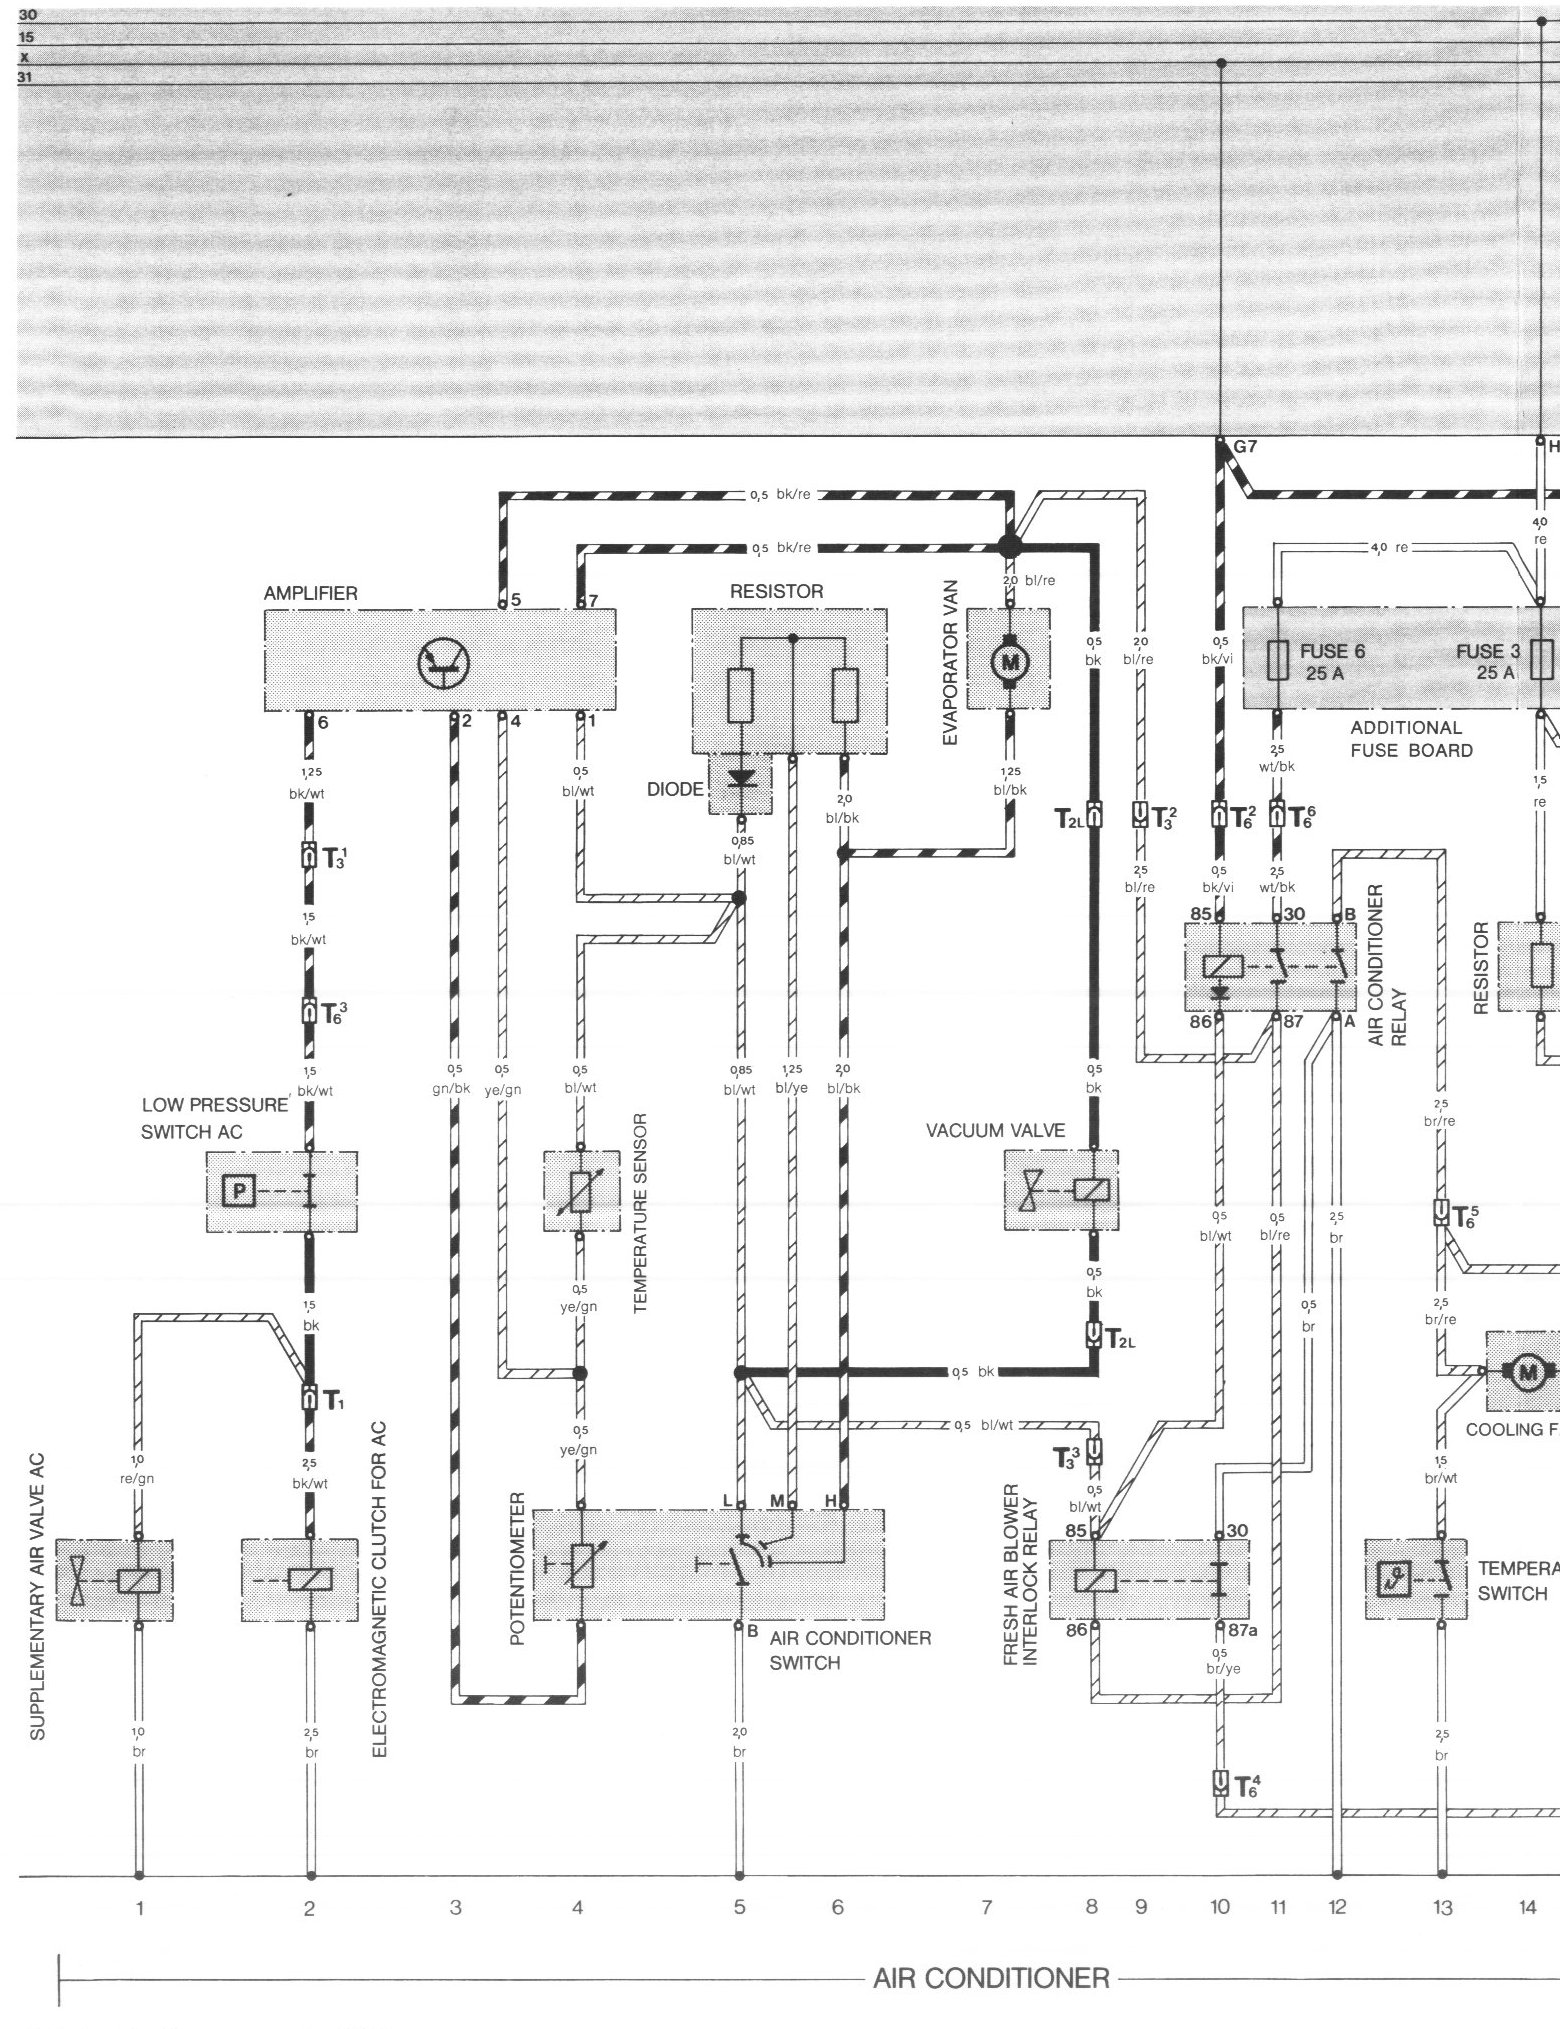 1992 Porsche Engine Diagram List Of Schematic Circuit Aldl To Usb 944 S2 Wiring Just Data Rh Ag Skiphire Co Uk